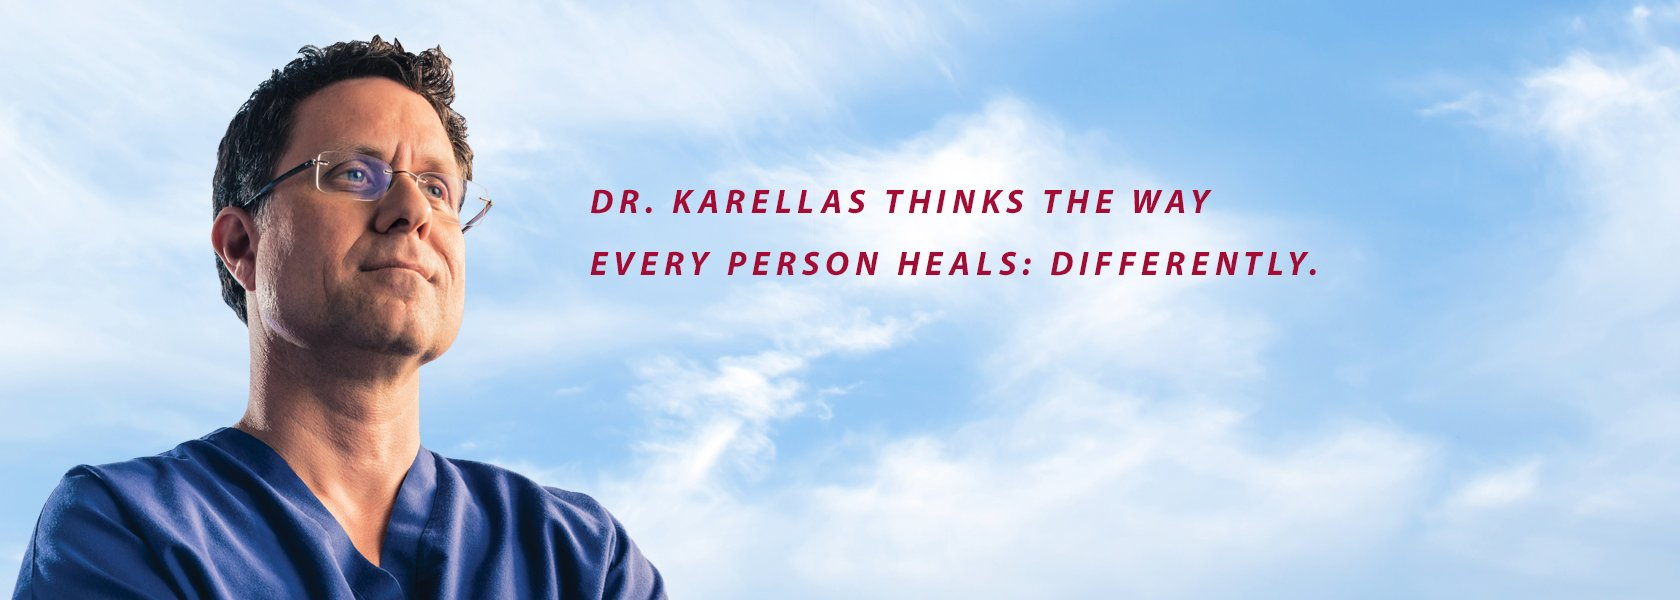 Dr. Karellas thinks the way every person heals: differently.